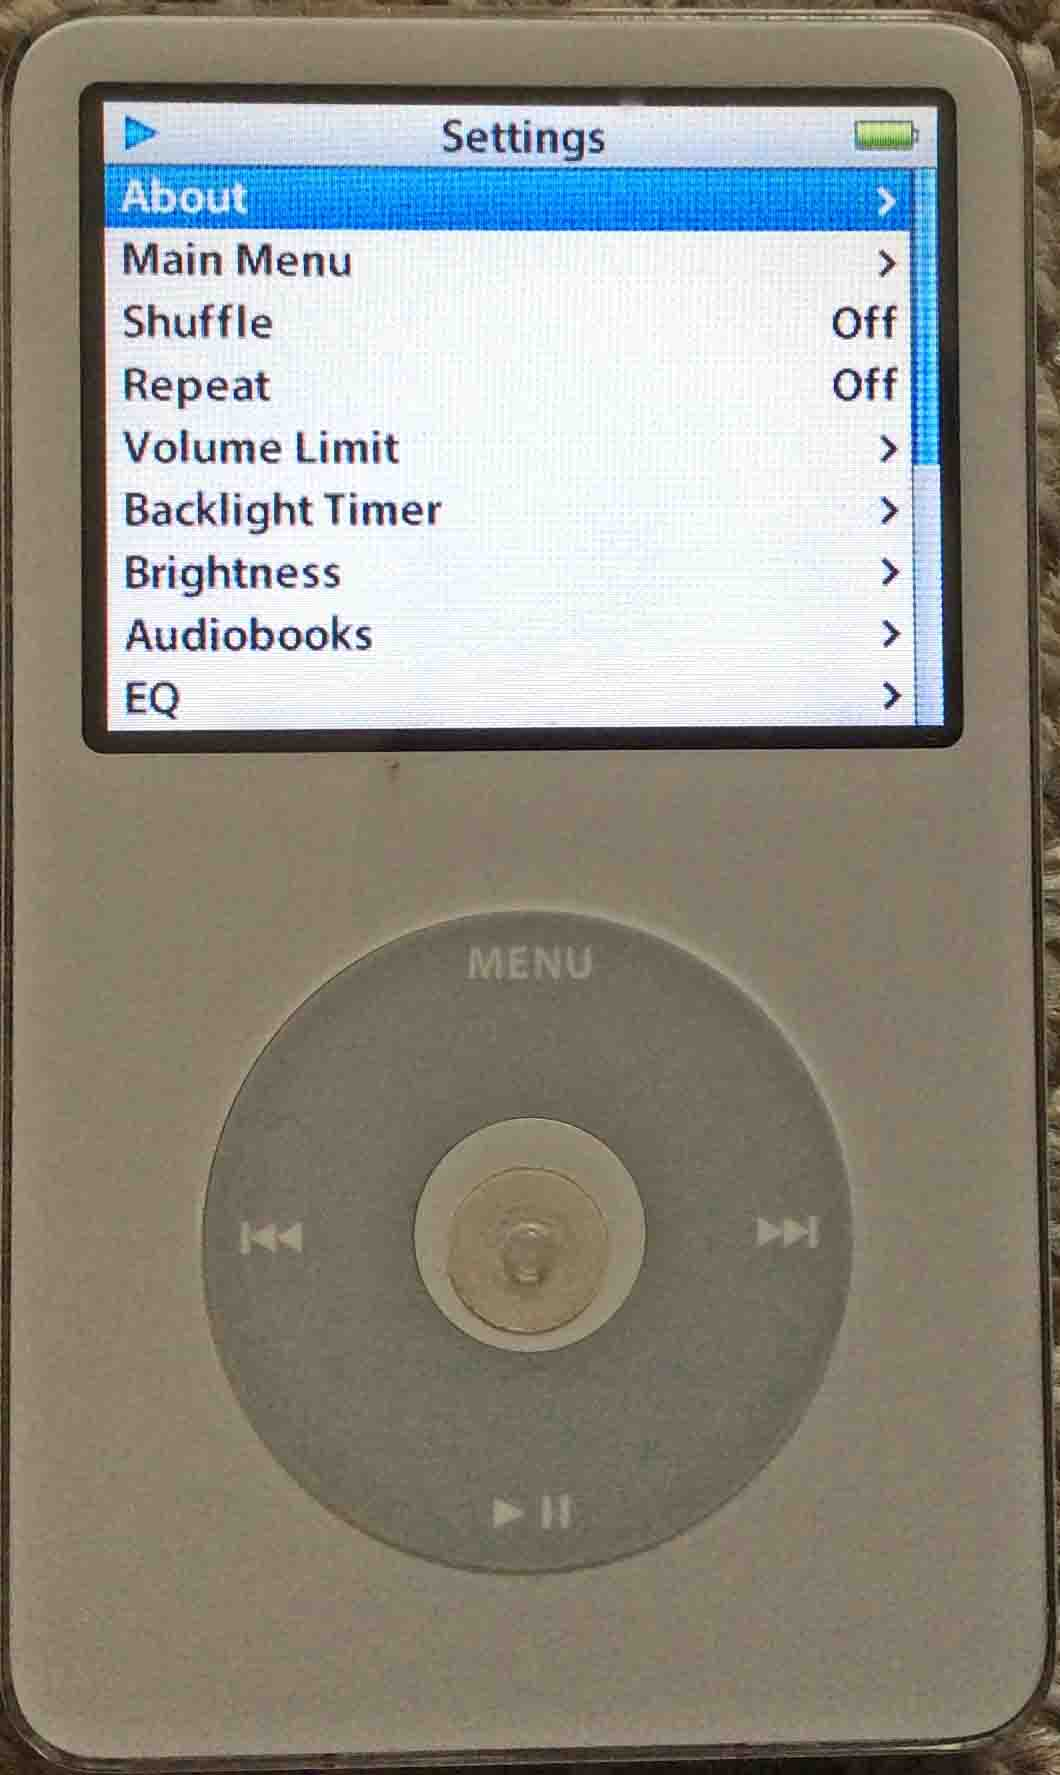 Reset iPod Video Apple Player to Factory Default Settings